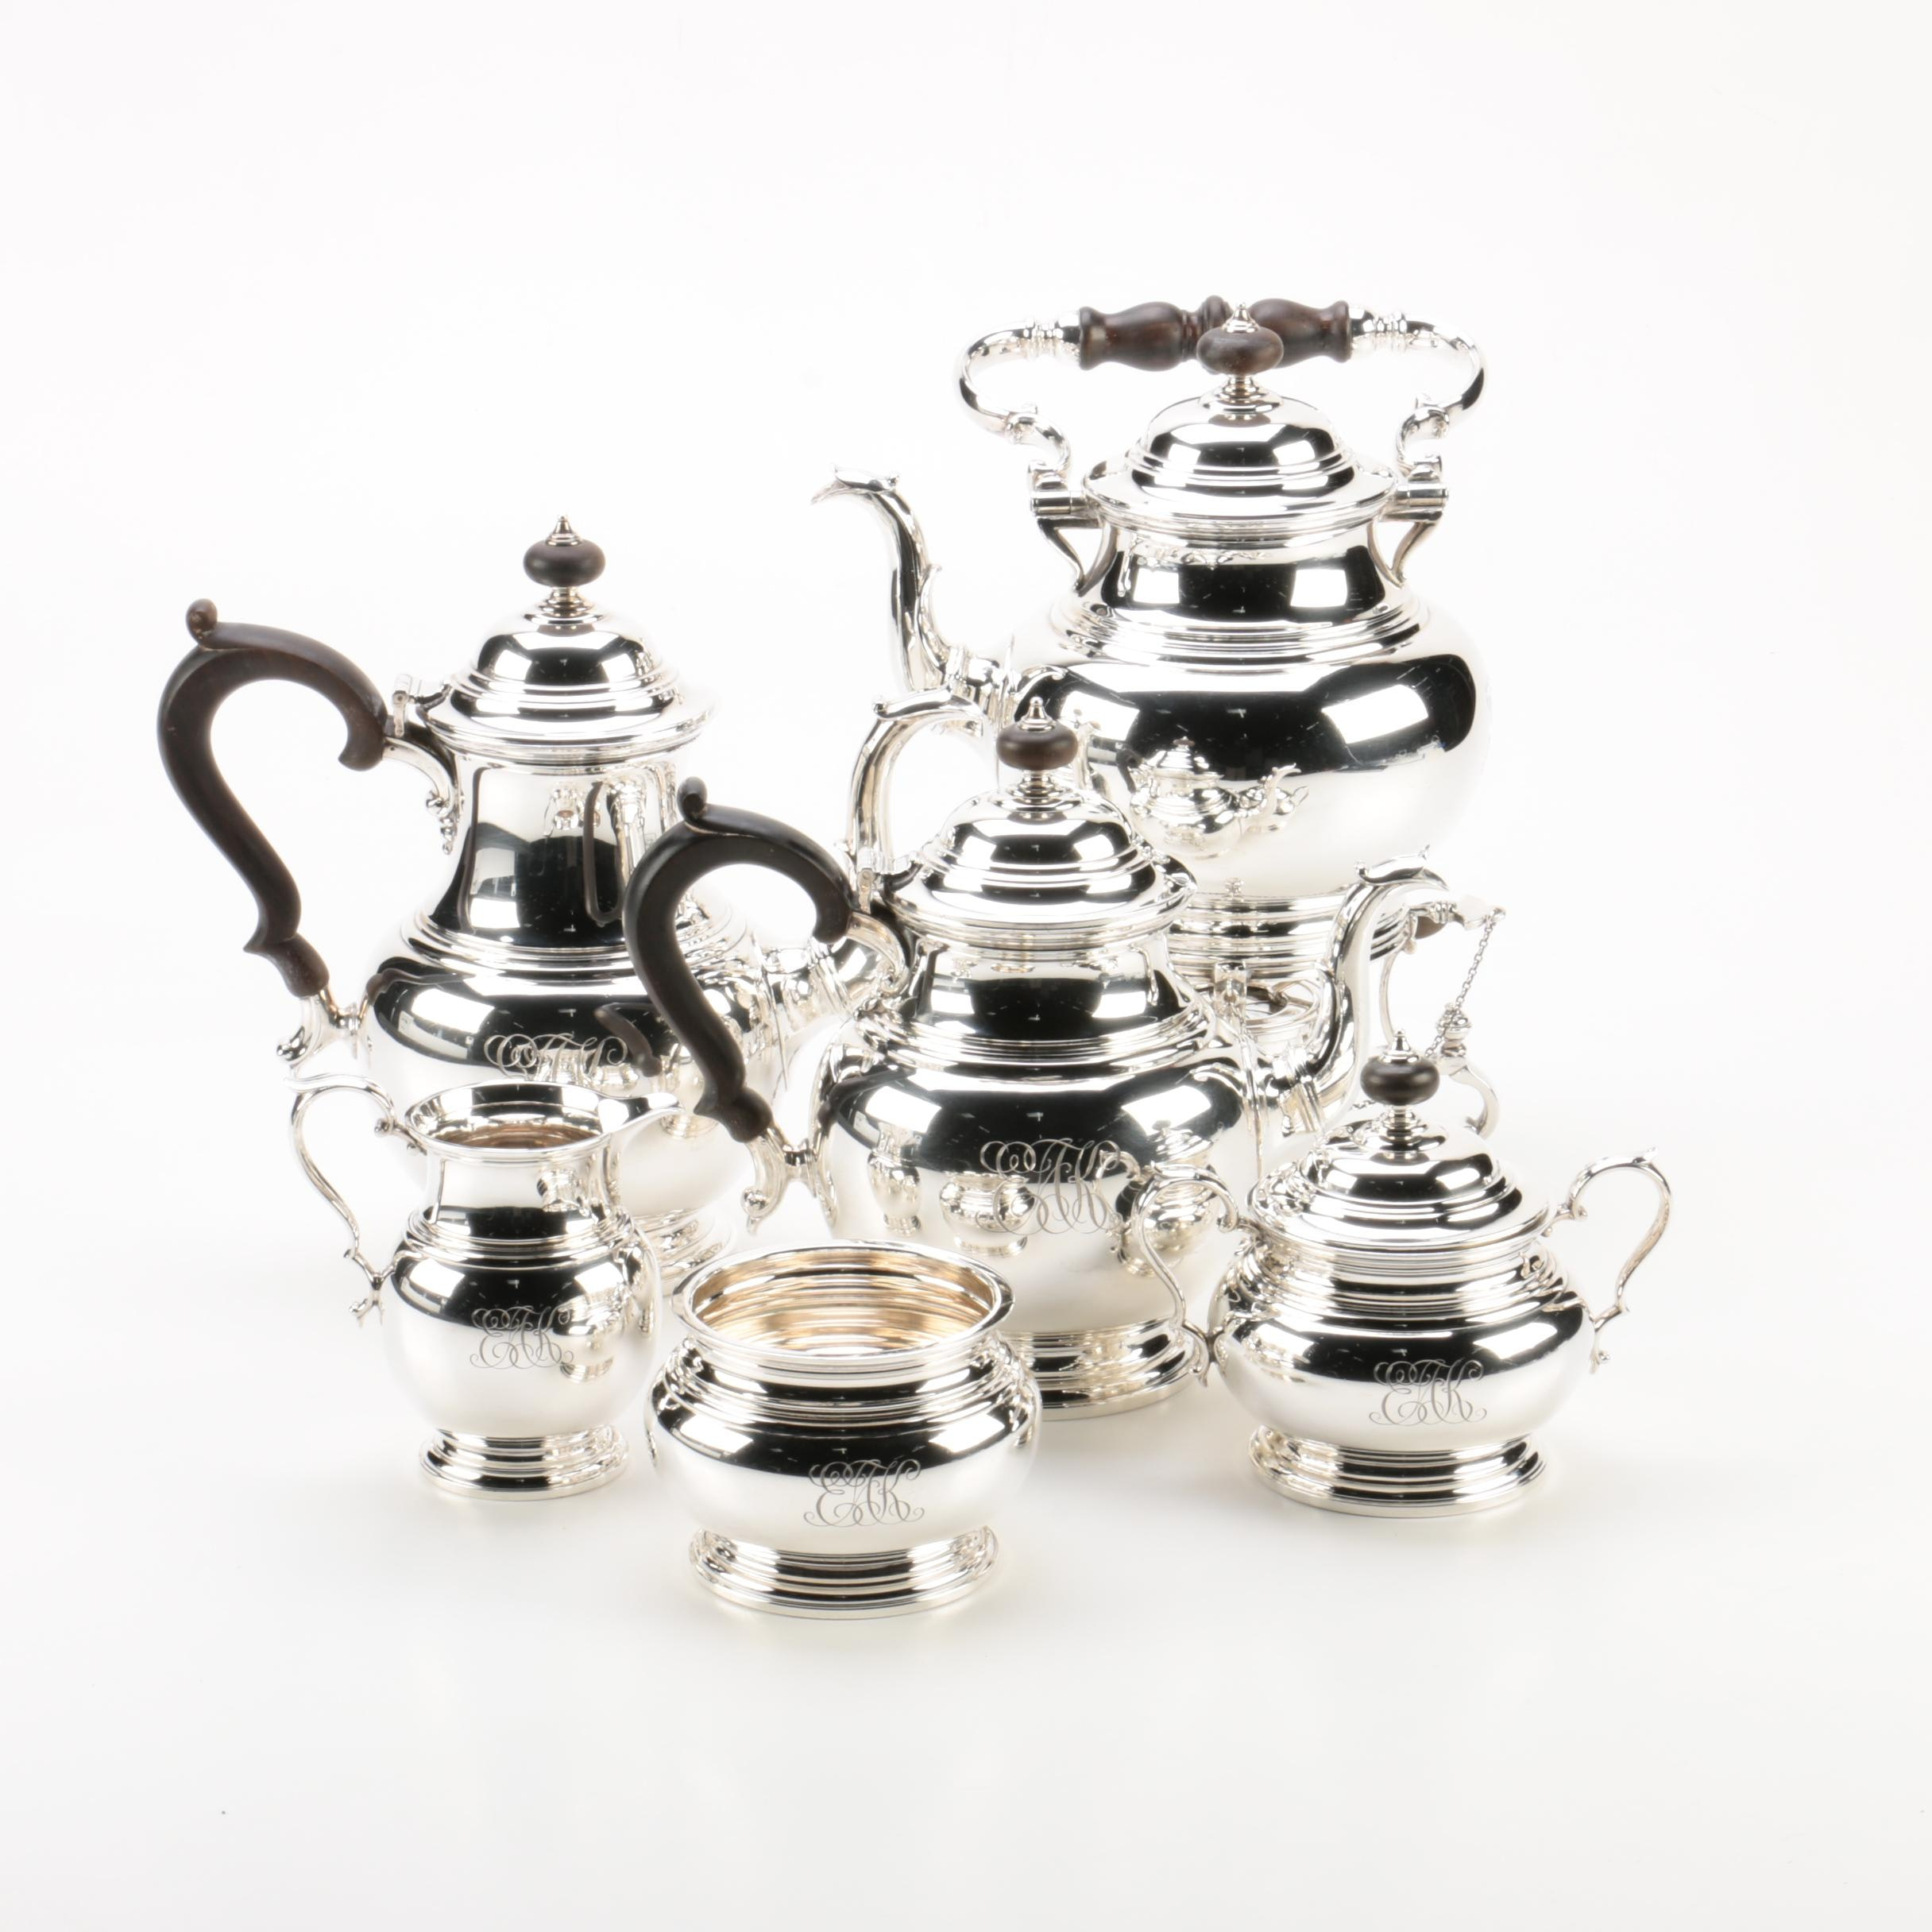 Early 1940s - Early 1950s Gorham Sterling Silver Coffee and Tea Set